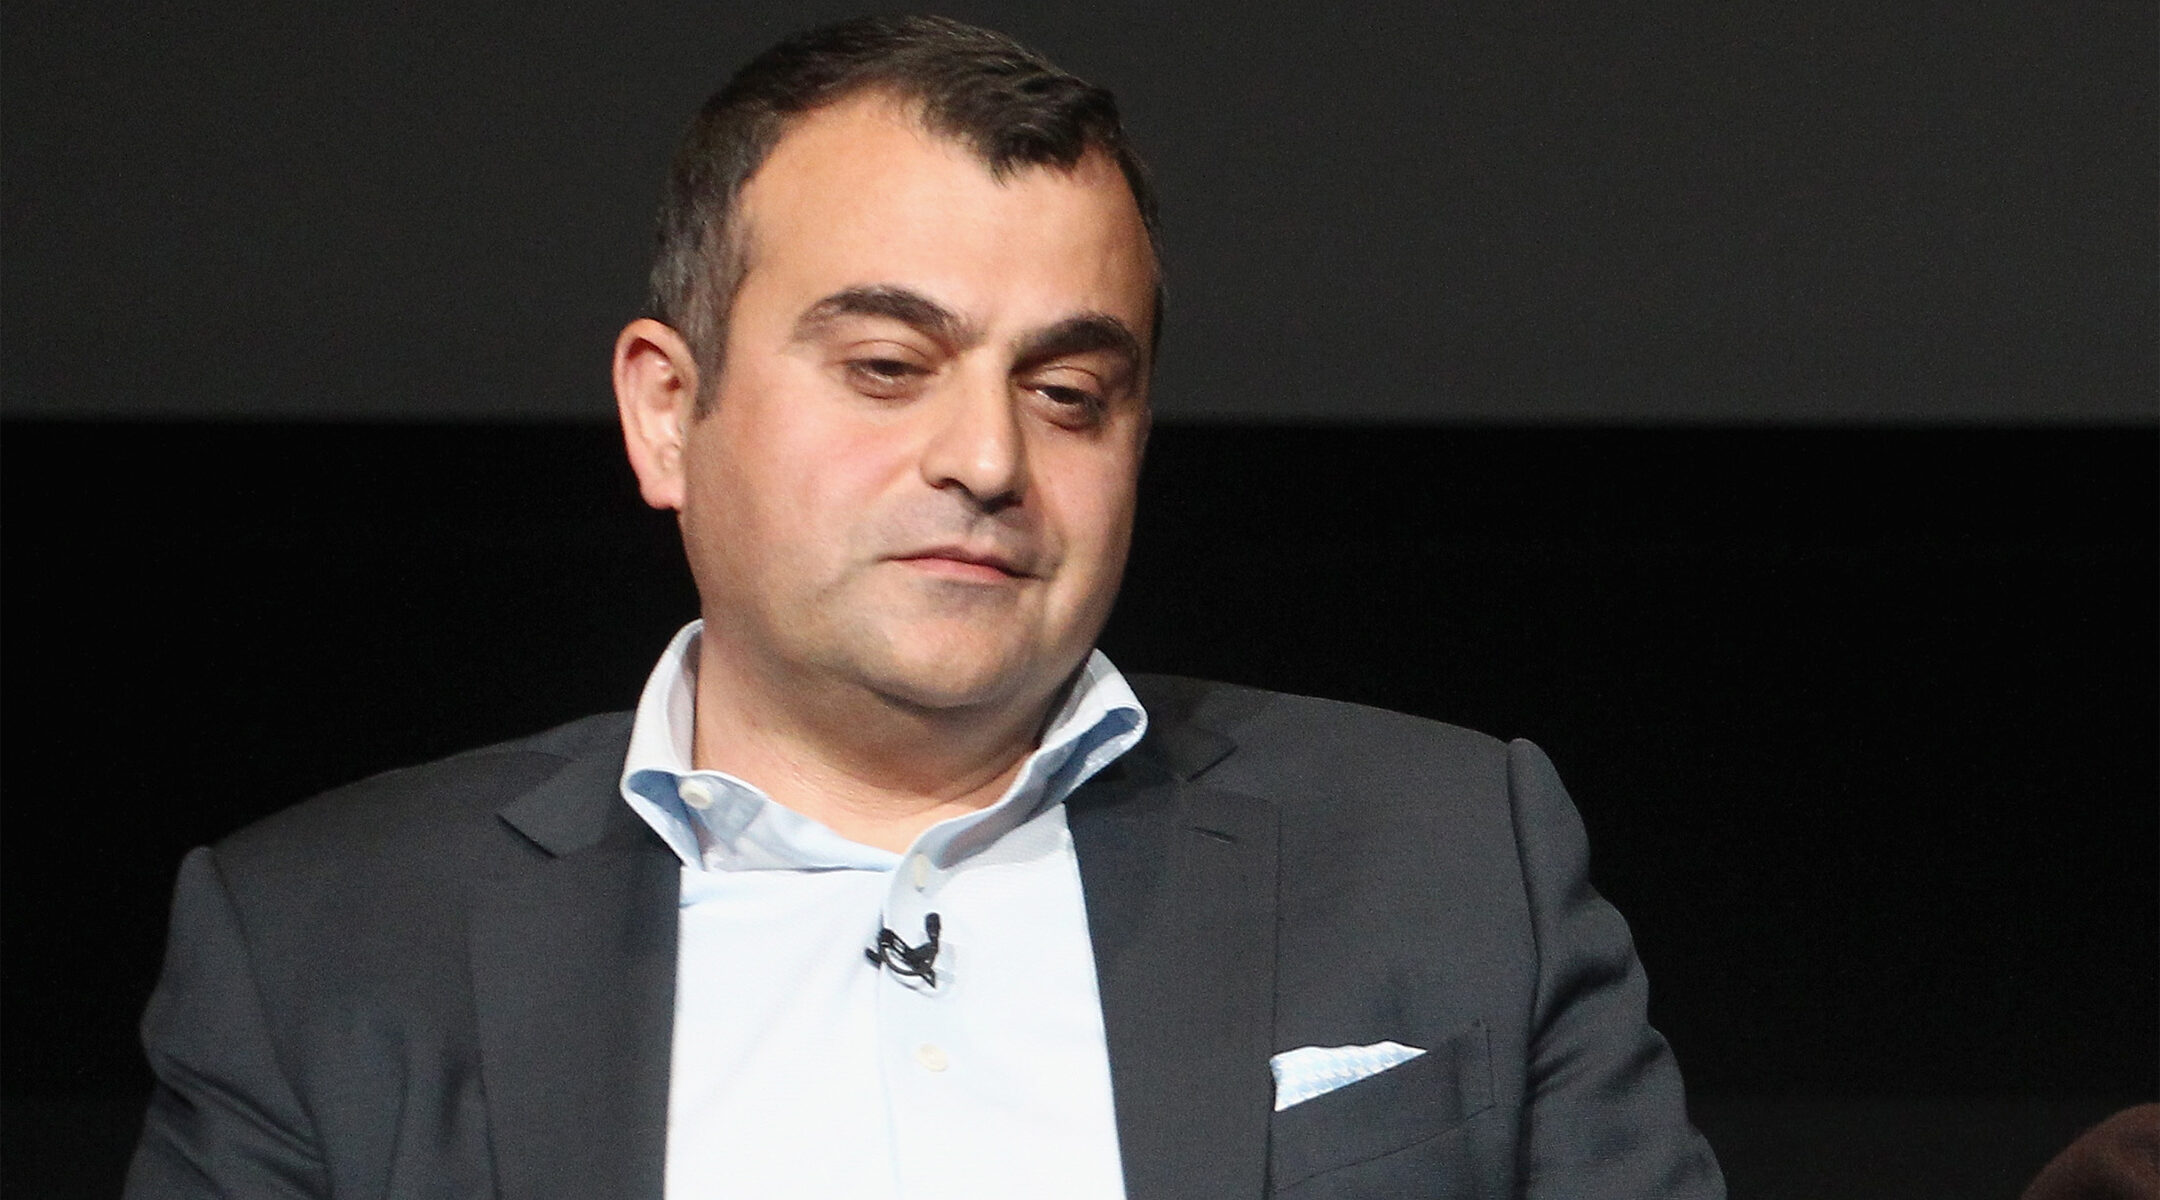 Ali Soufan, seen in 2018, had monitored al-Qaida for the FBI both before the 9/11 attack on the World Trade Center in 2001 and afterward. (Photo/JTA-Tommaso Boddi-Getty Images for Hulu)